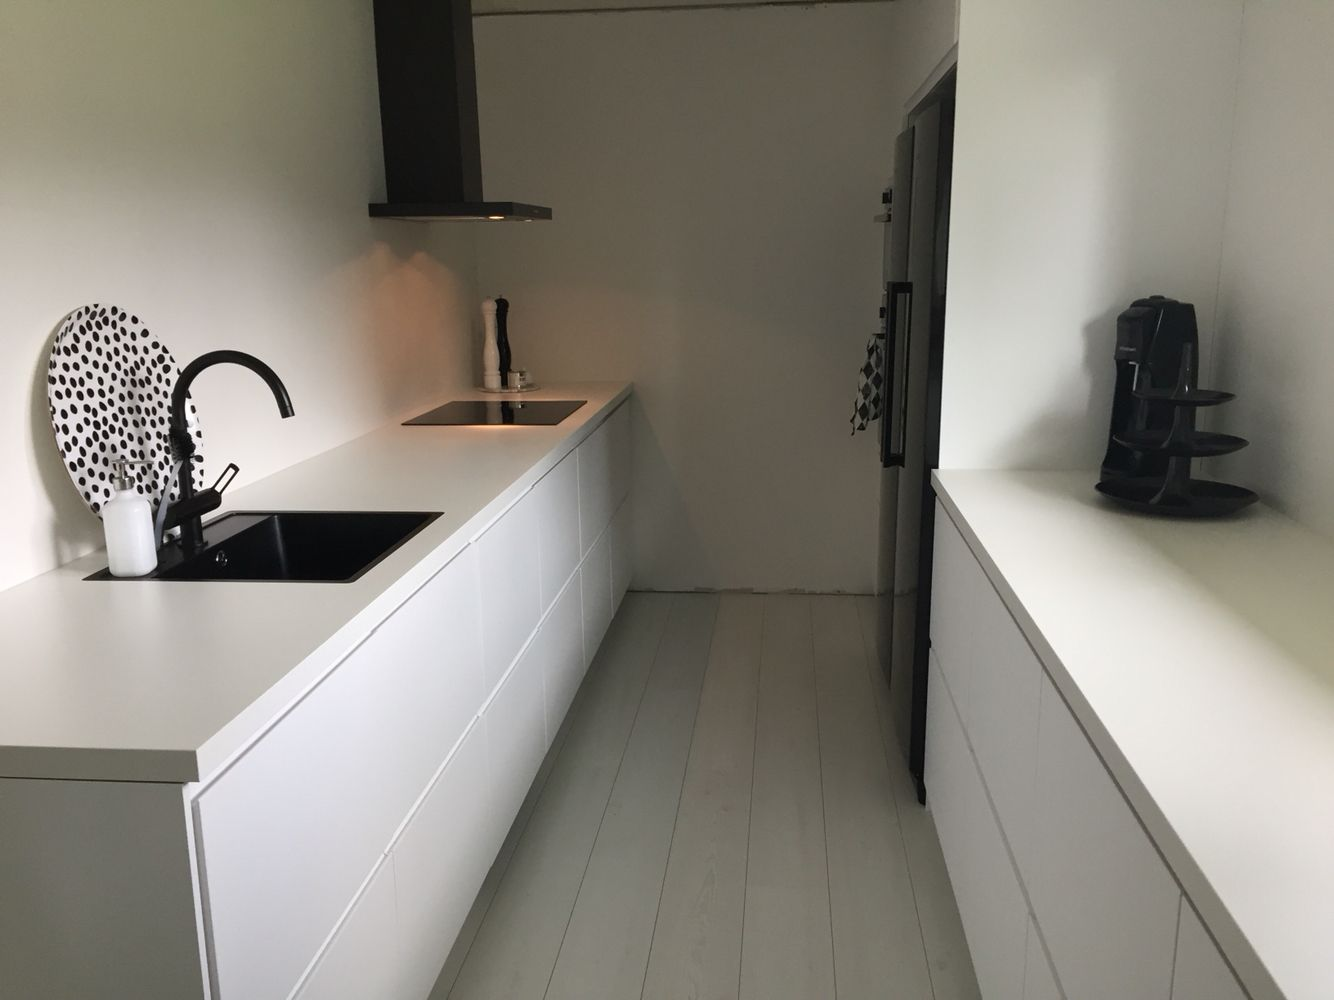 Ikea Voxtorp Ikea Voxtorp Kitchen Pinterest Ikea Kitchens